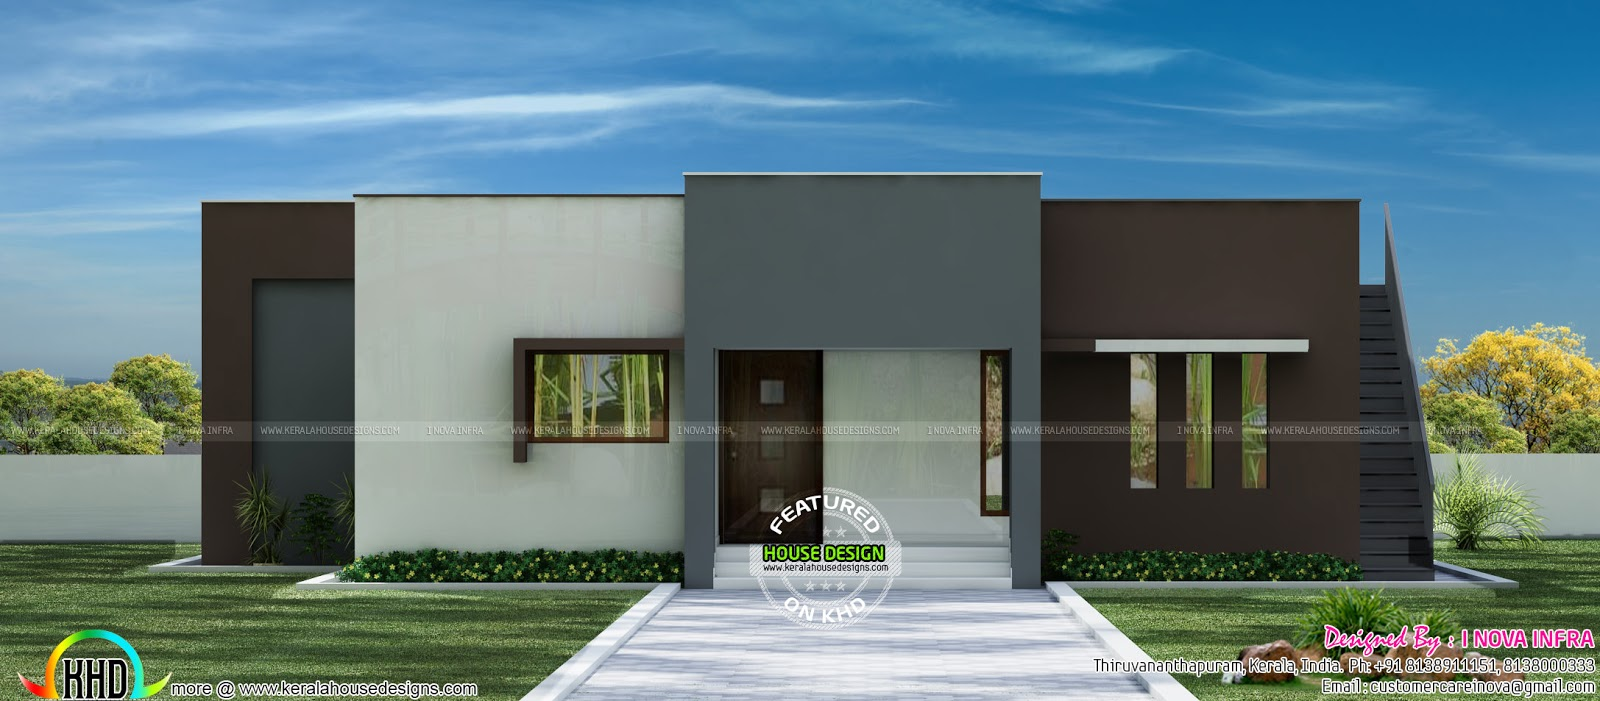 Minimalist house single floor kerala home design for House design minimalist modern 1 floor